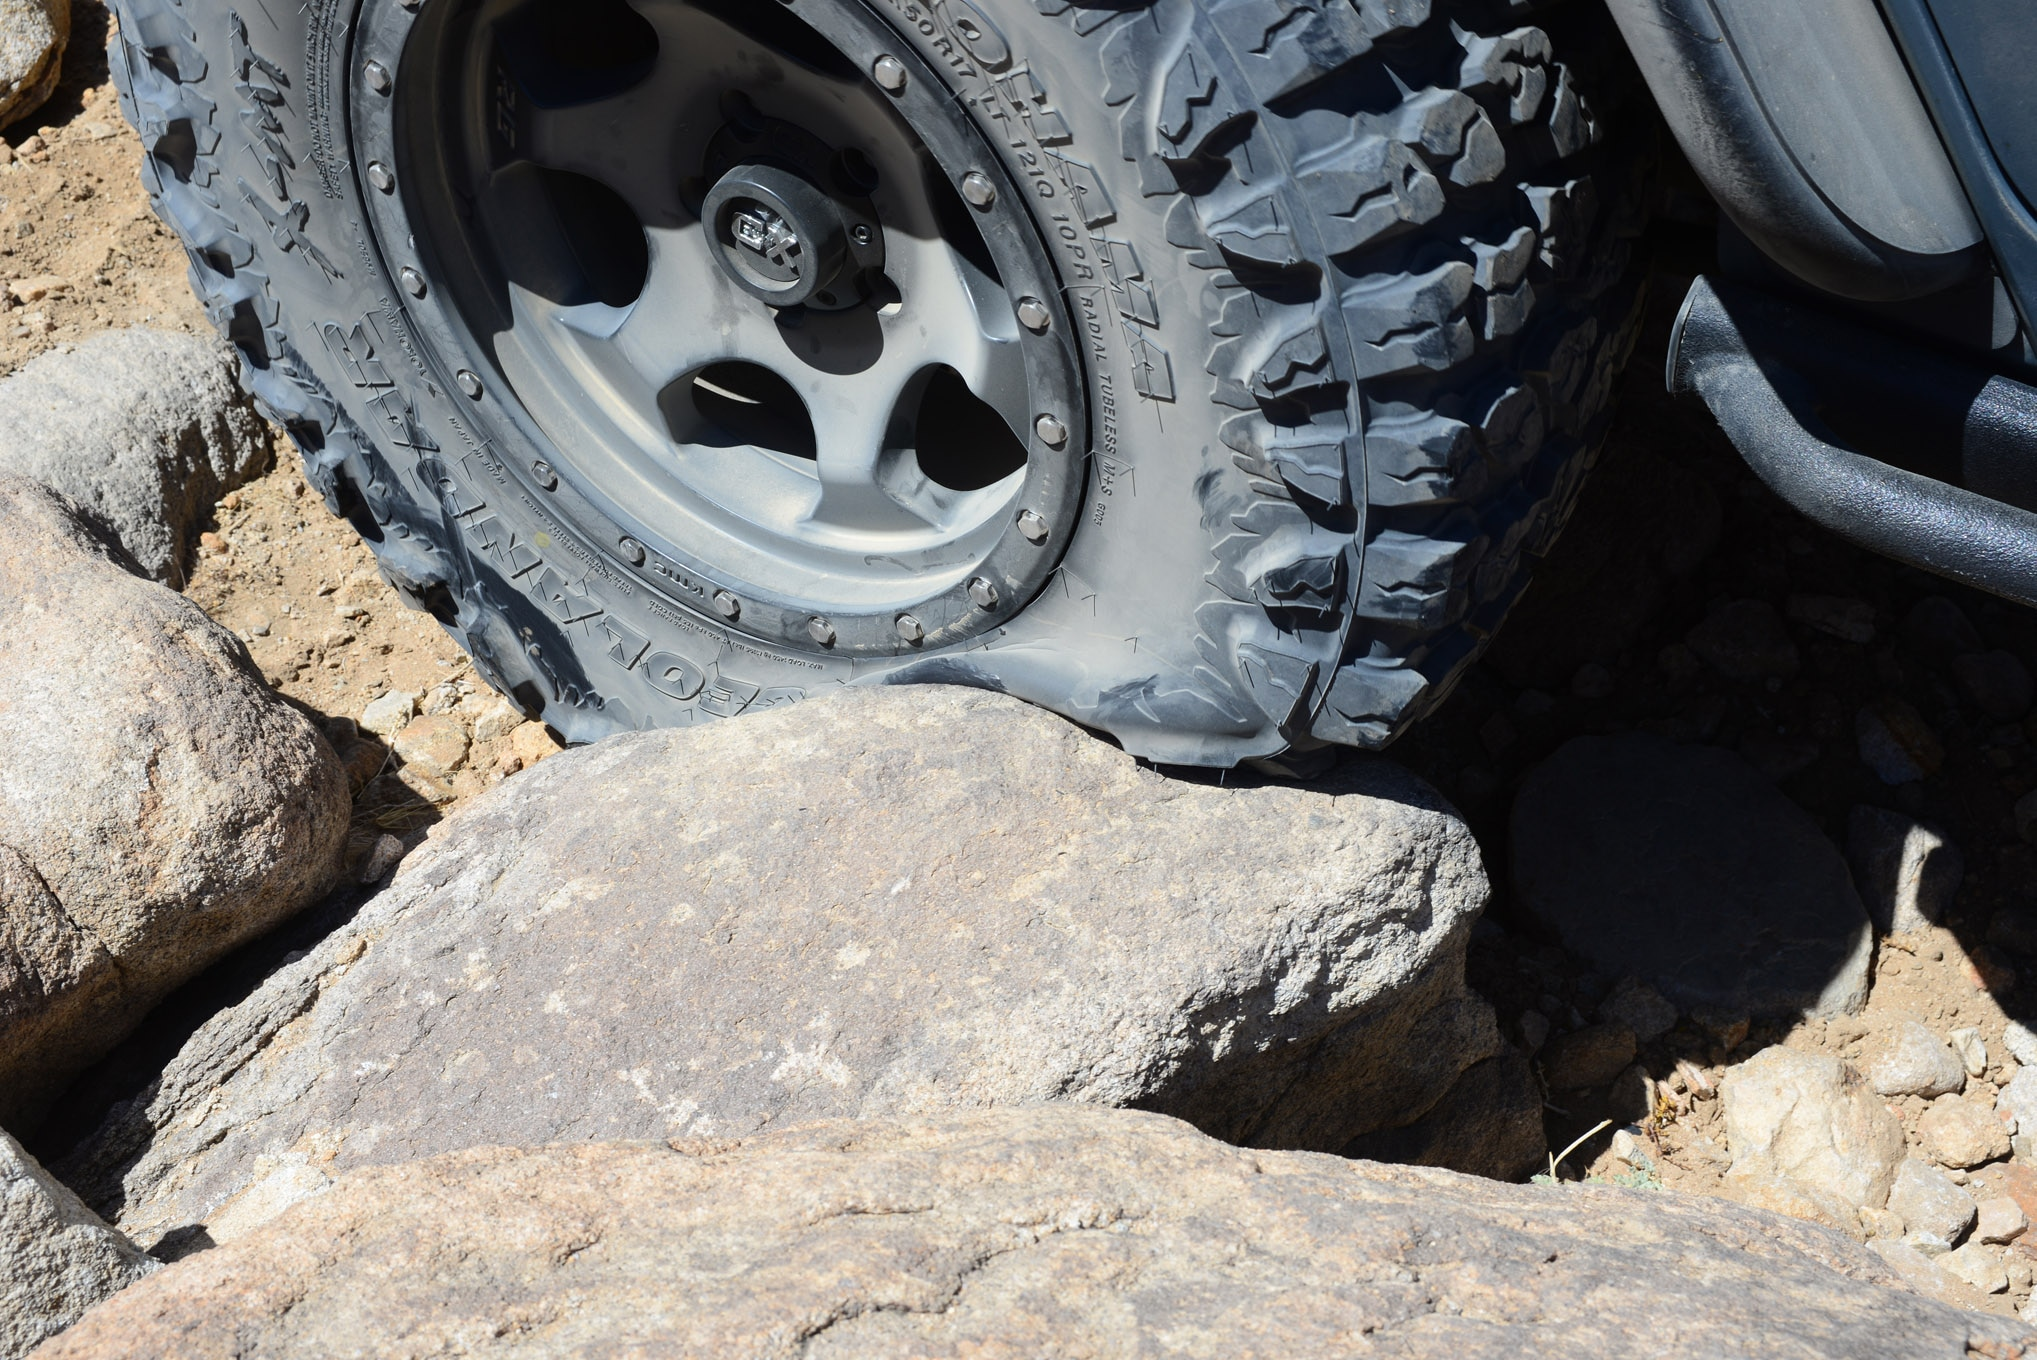 Three-ply sidewalls assure a tough tire. Note the flexibility though as an aired-down version folds its tread around the rock without any sidewall damage. The Geo-Shield construction is said to be more durable than any previous offering.